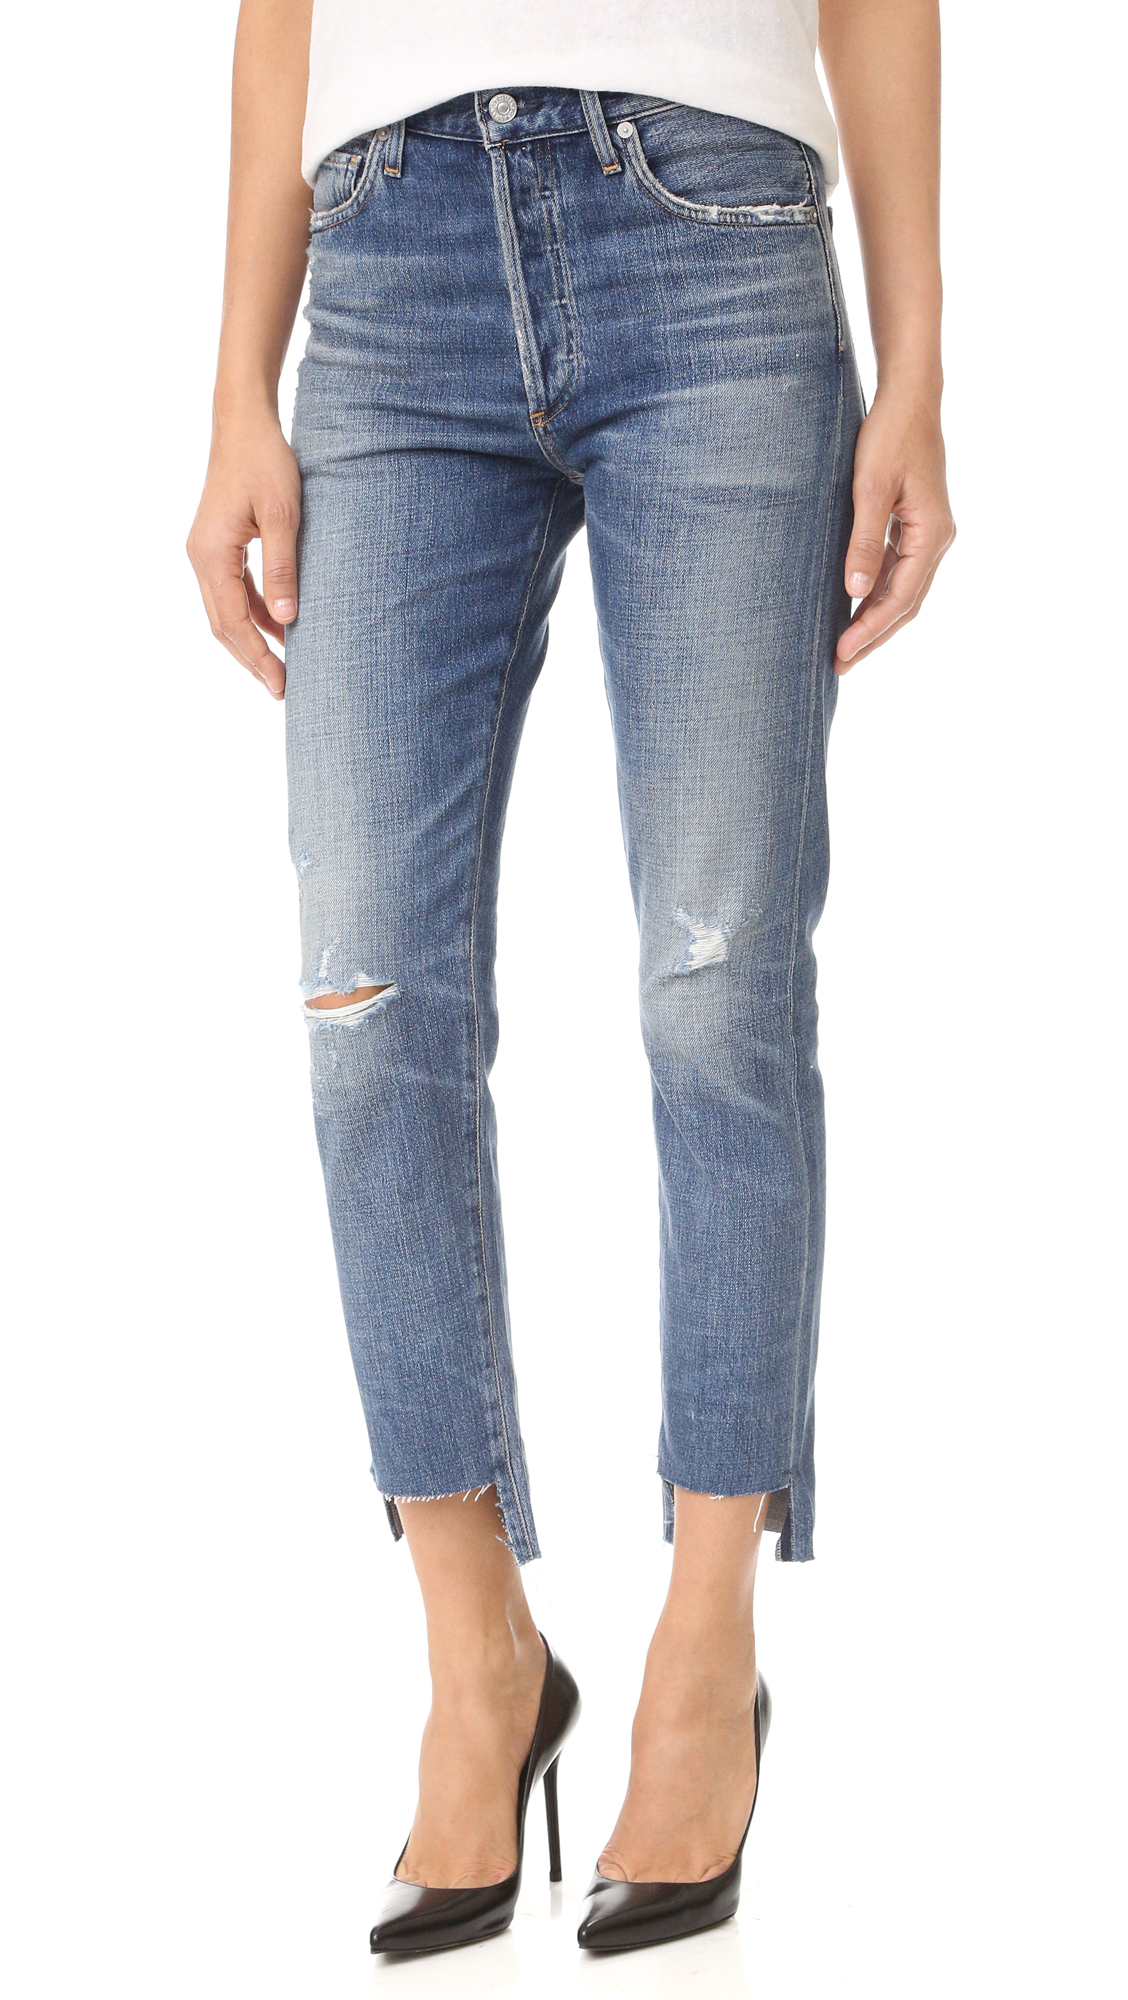 Citizens Of Humanity Liya High Rise Classic Fit Jeans - Troublemaker at Shopbop